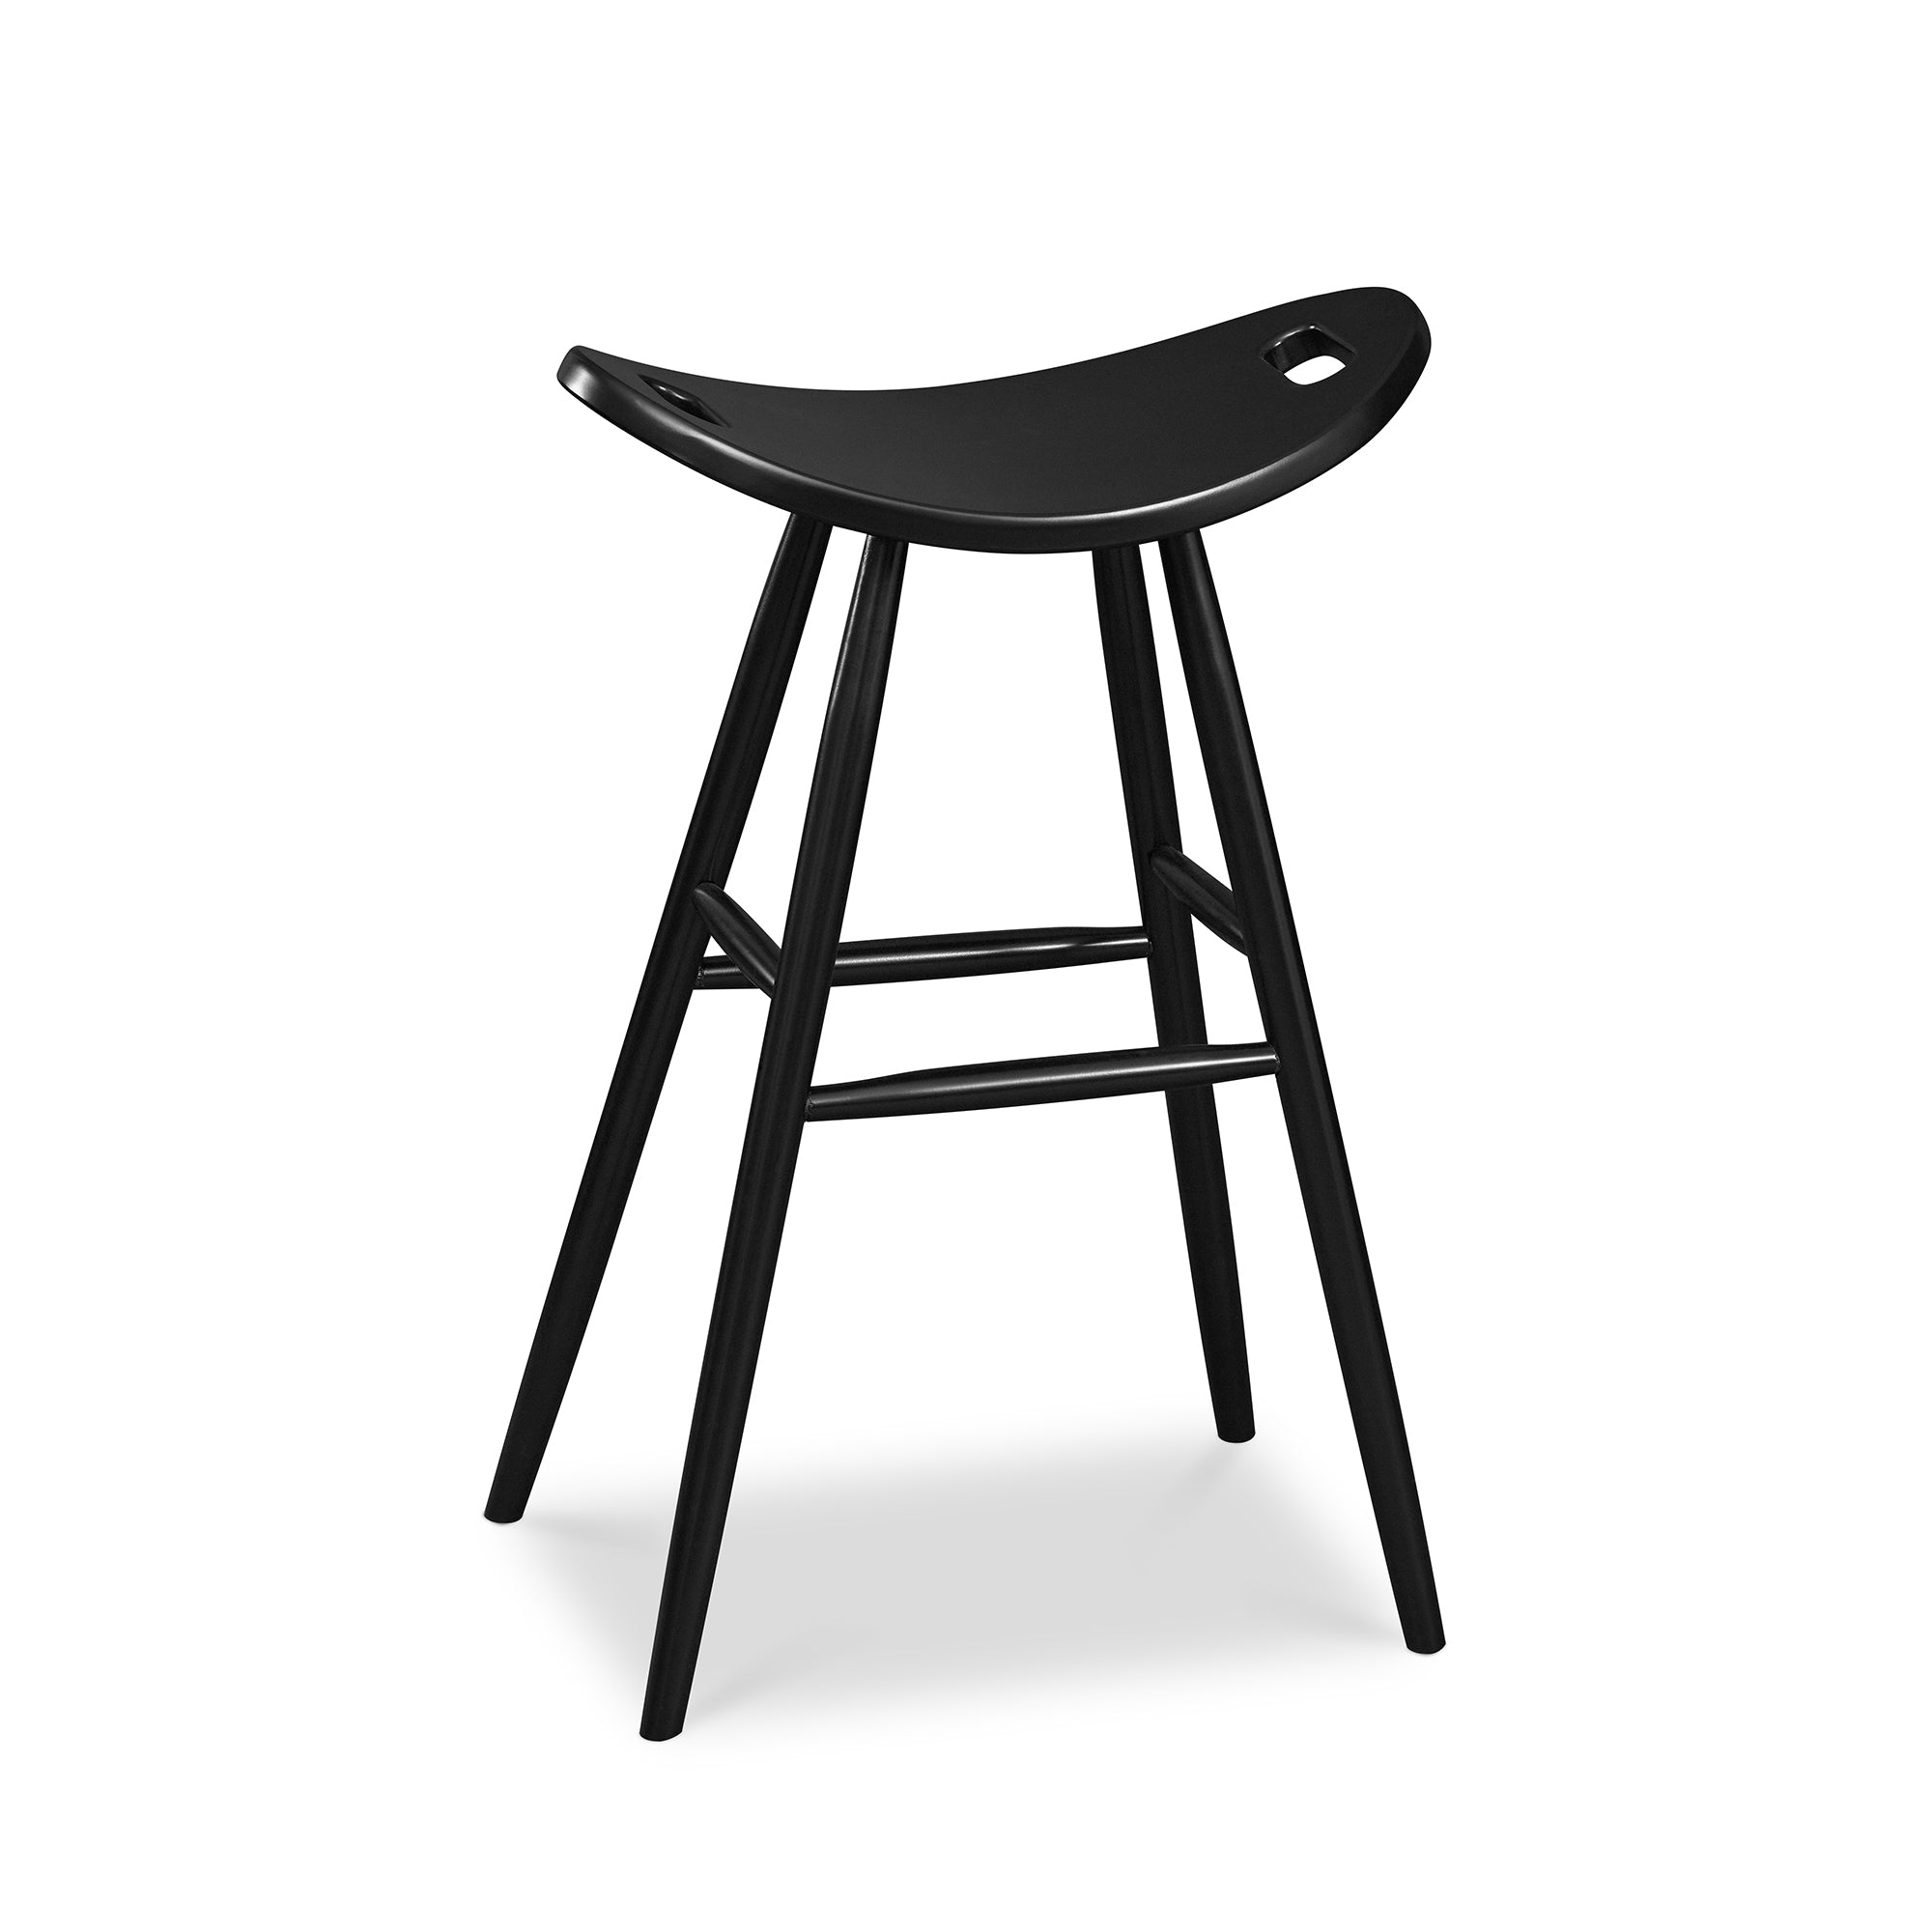 Tall bar height painted black saddle seat stool